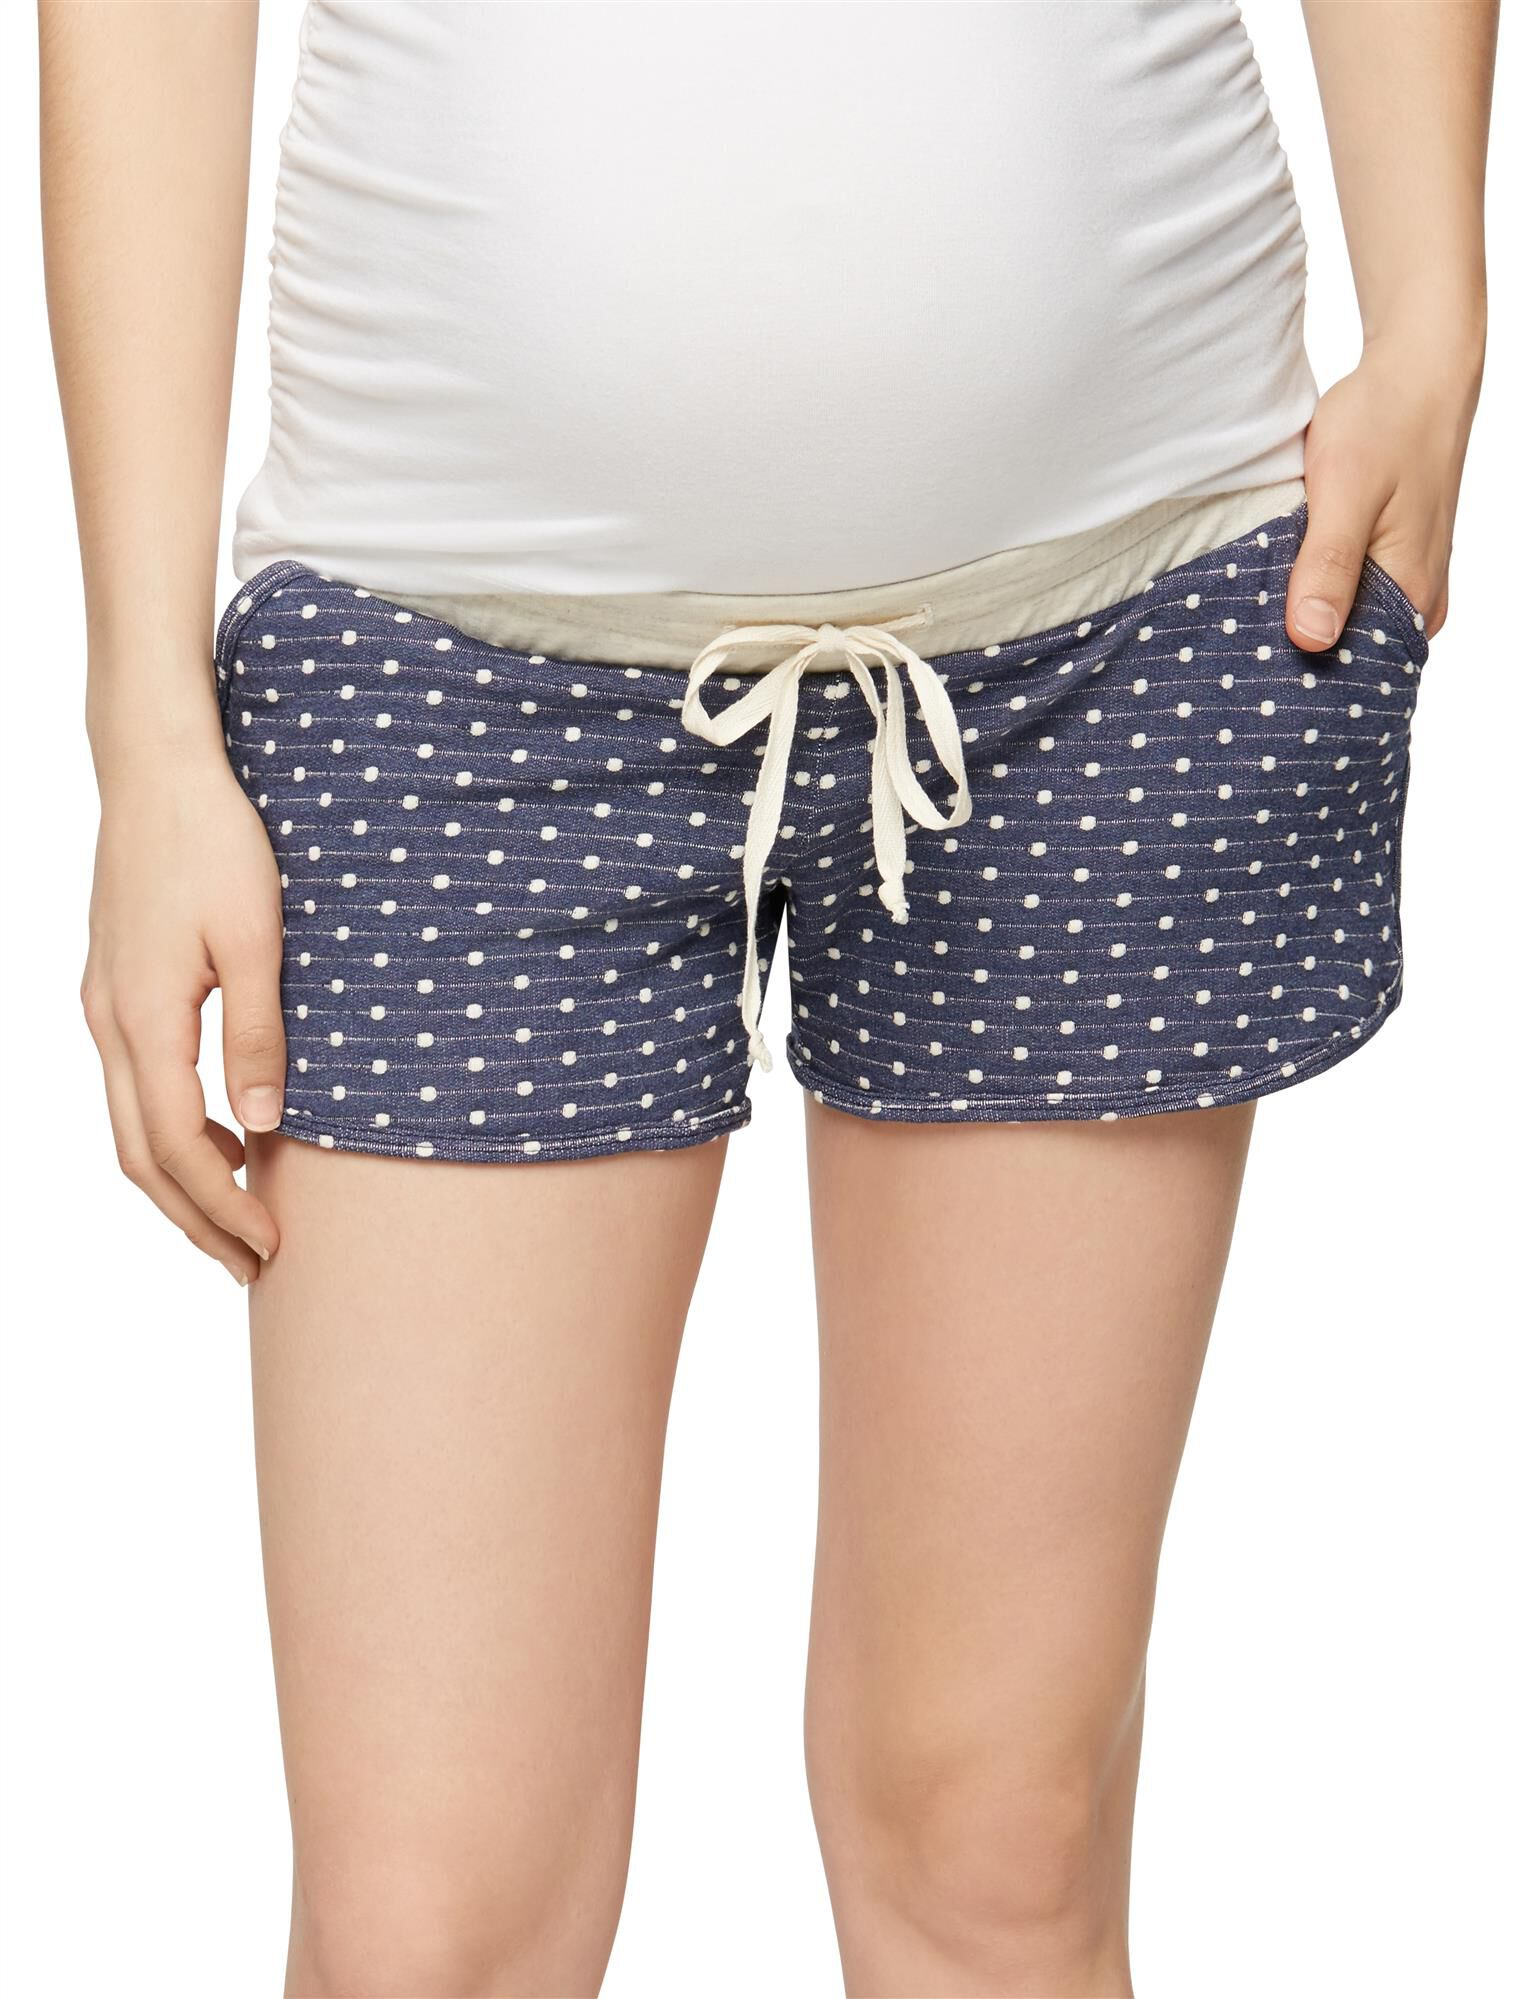 Pull On Style Maternity Shorts